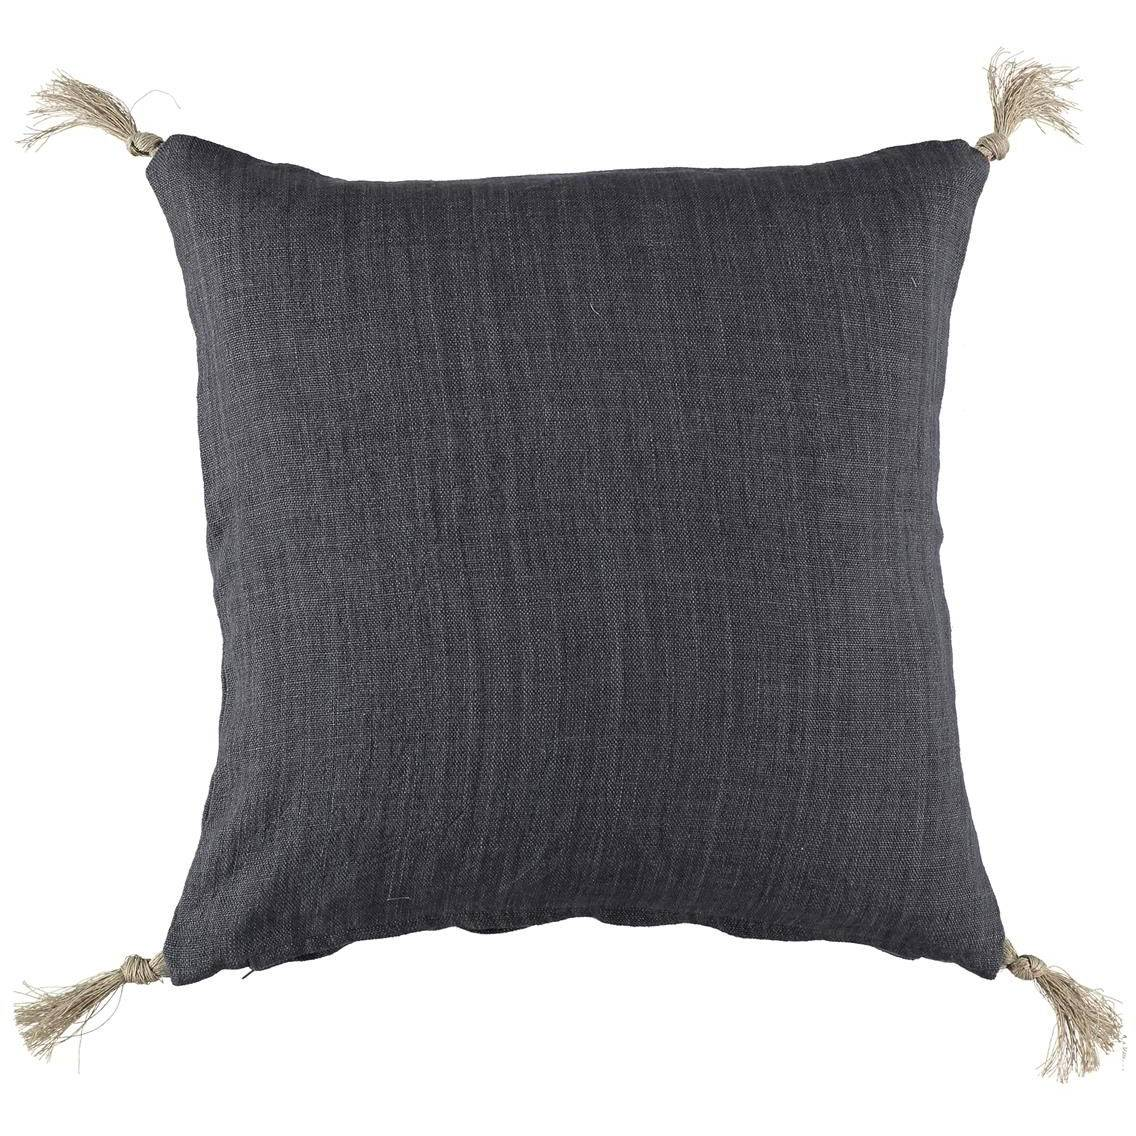 Gripsholm Linen Cushion Cover 50x50 cm, Ombre Blue